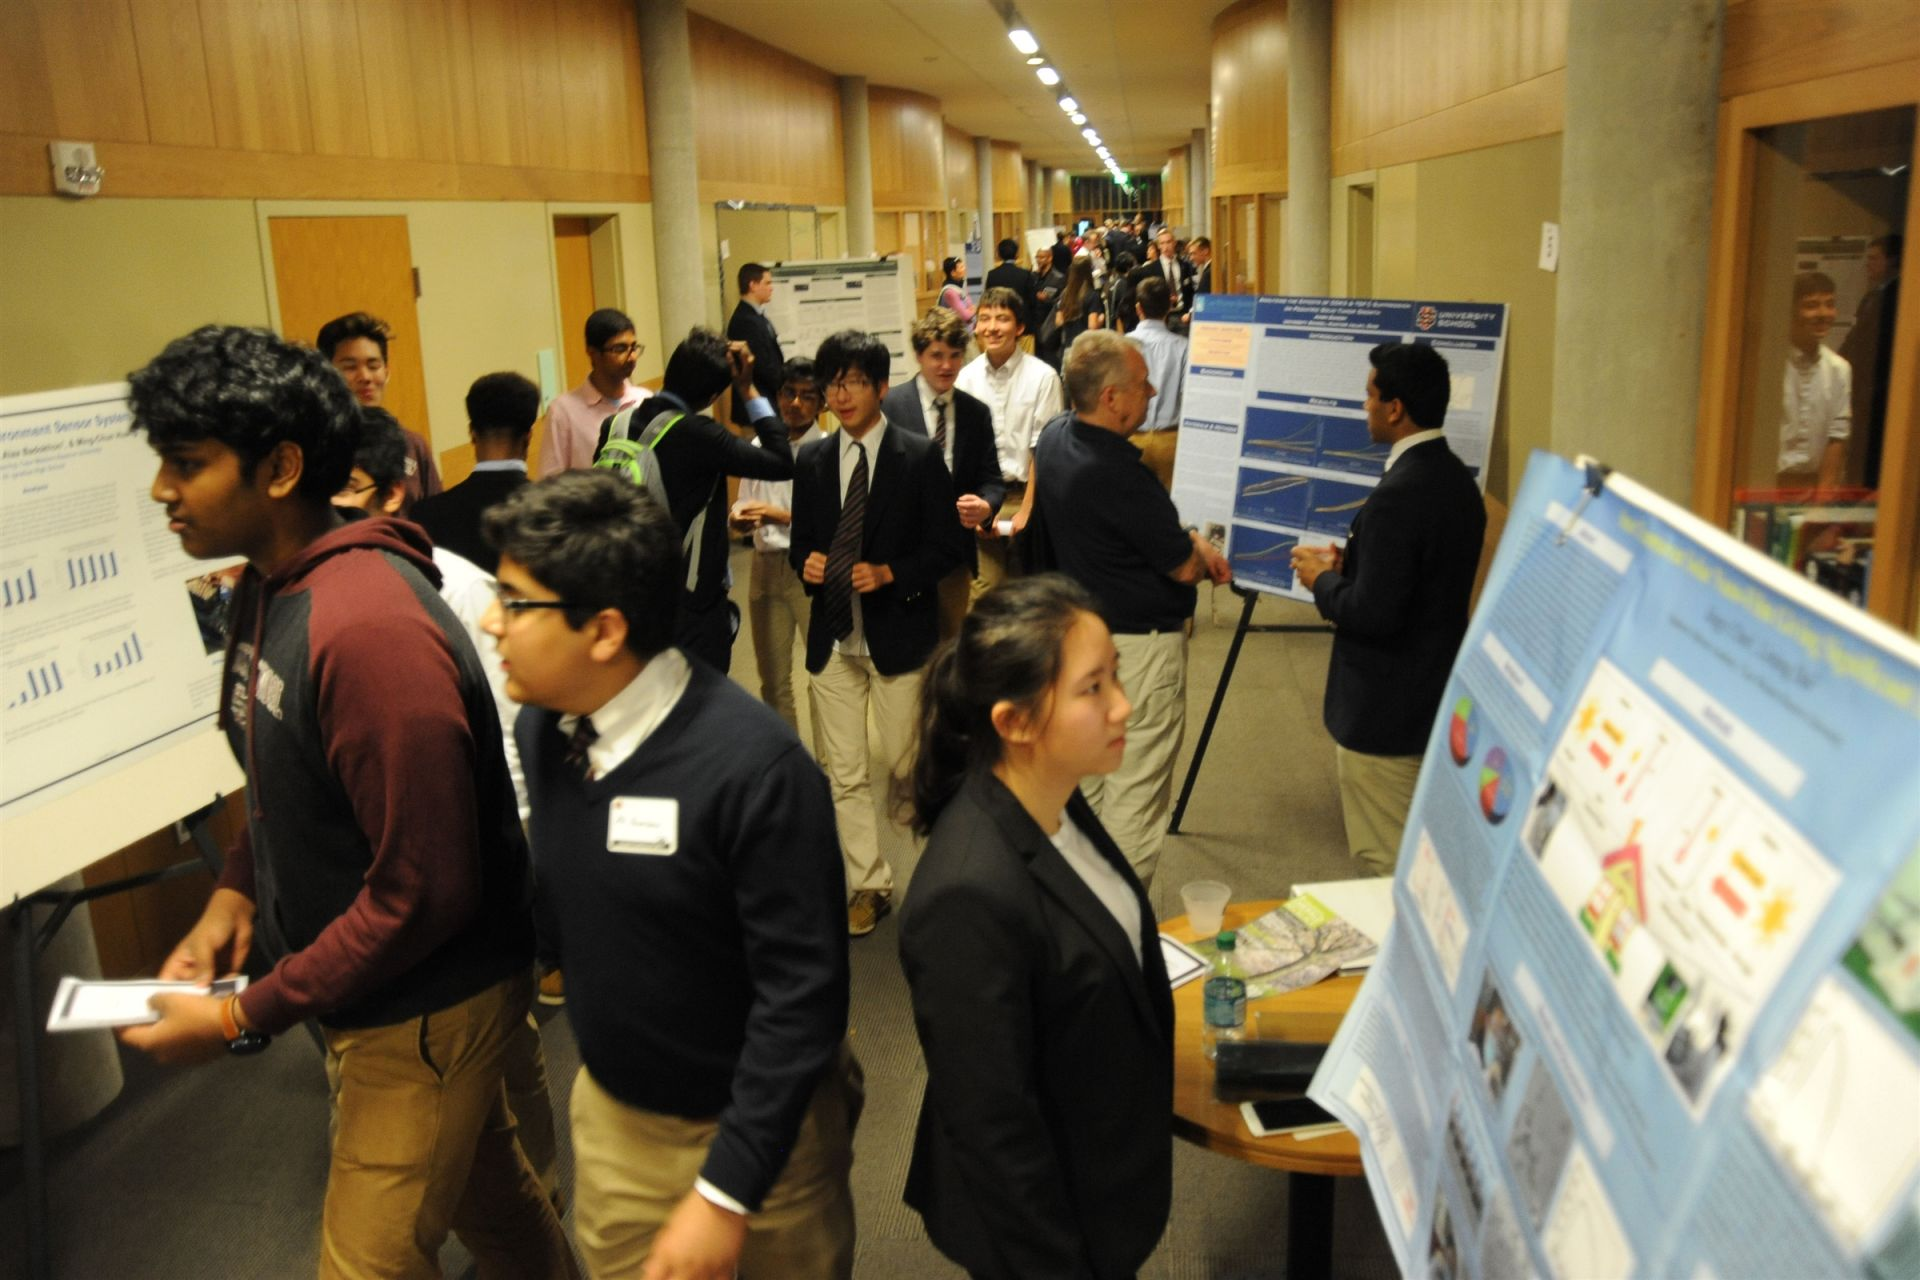 About 150 people gathered for the symposium which featured student presentations and a keynote speaker.